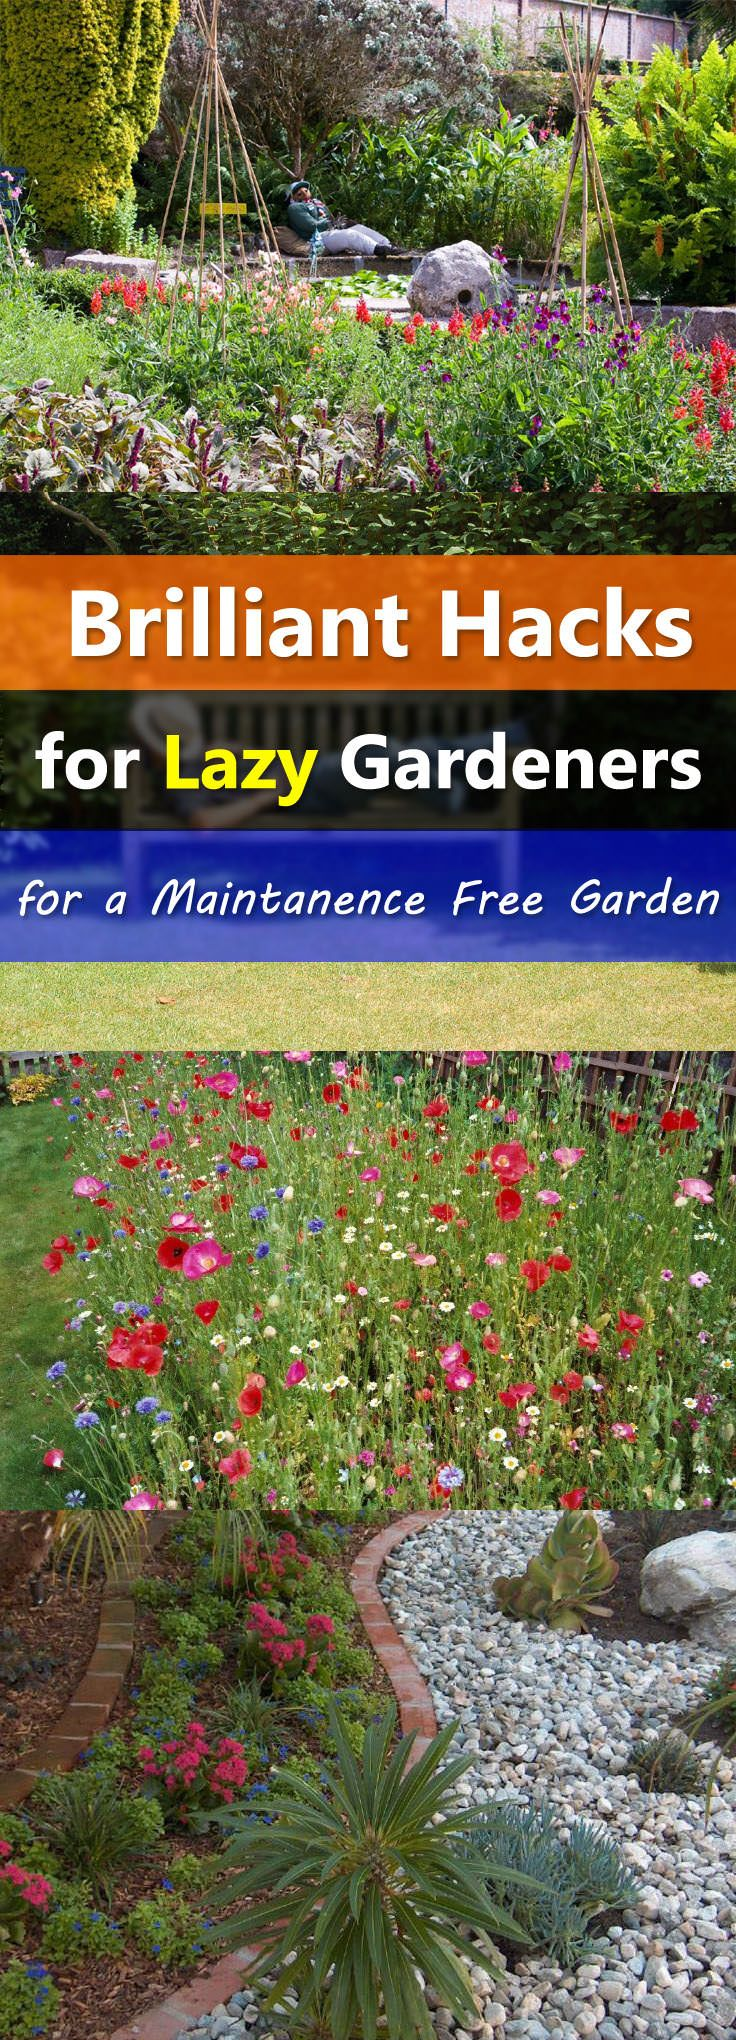 Gardening Hacks For The Lazy Gardeners To Make A Low Maintenance Garden